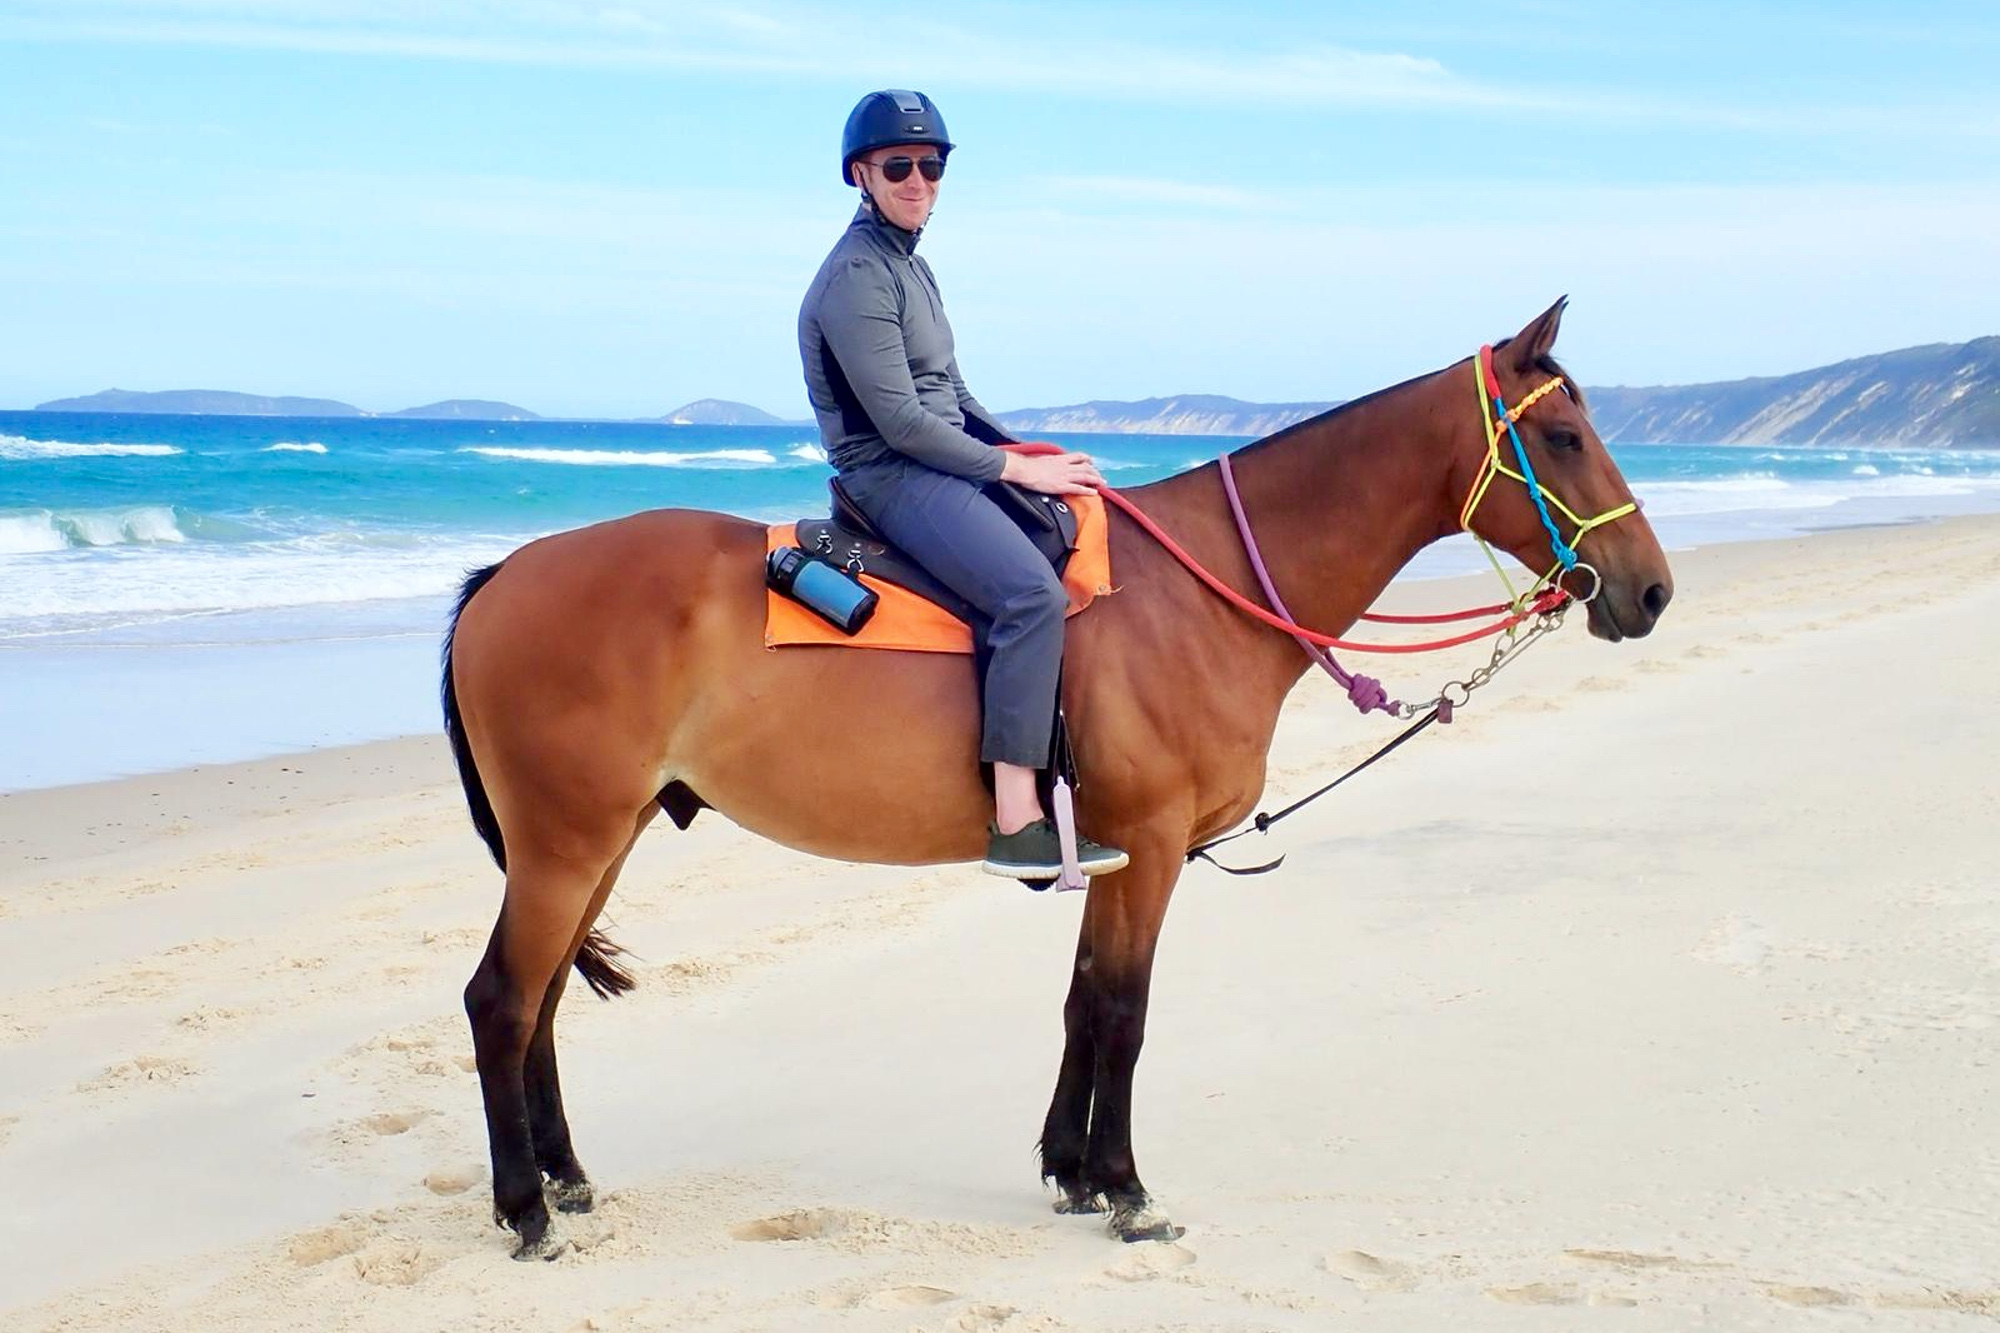 Cliff astride his noble steed Turbo on Rainbow Beach, Queensland © Clifton Wilkinson